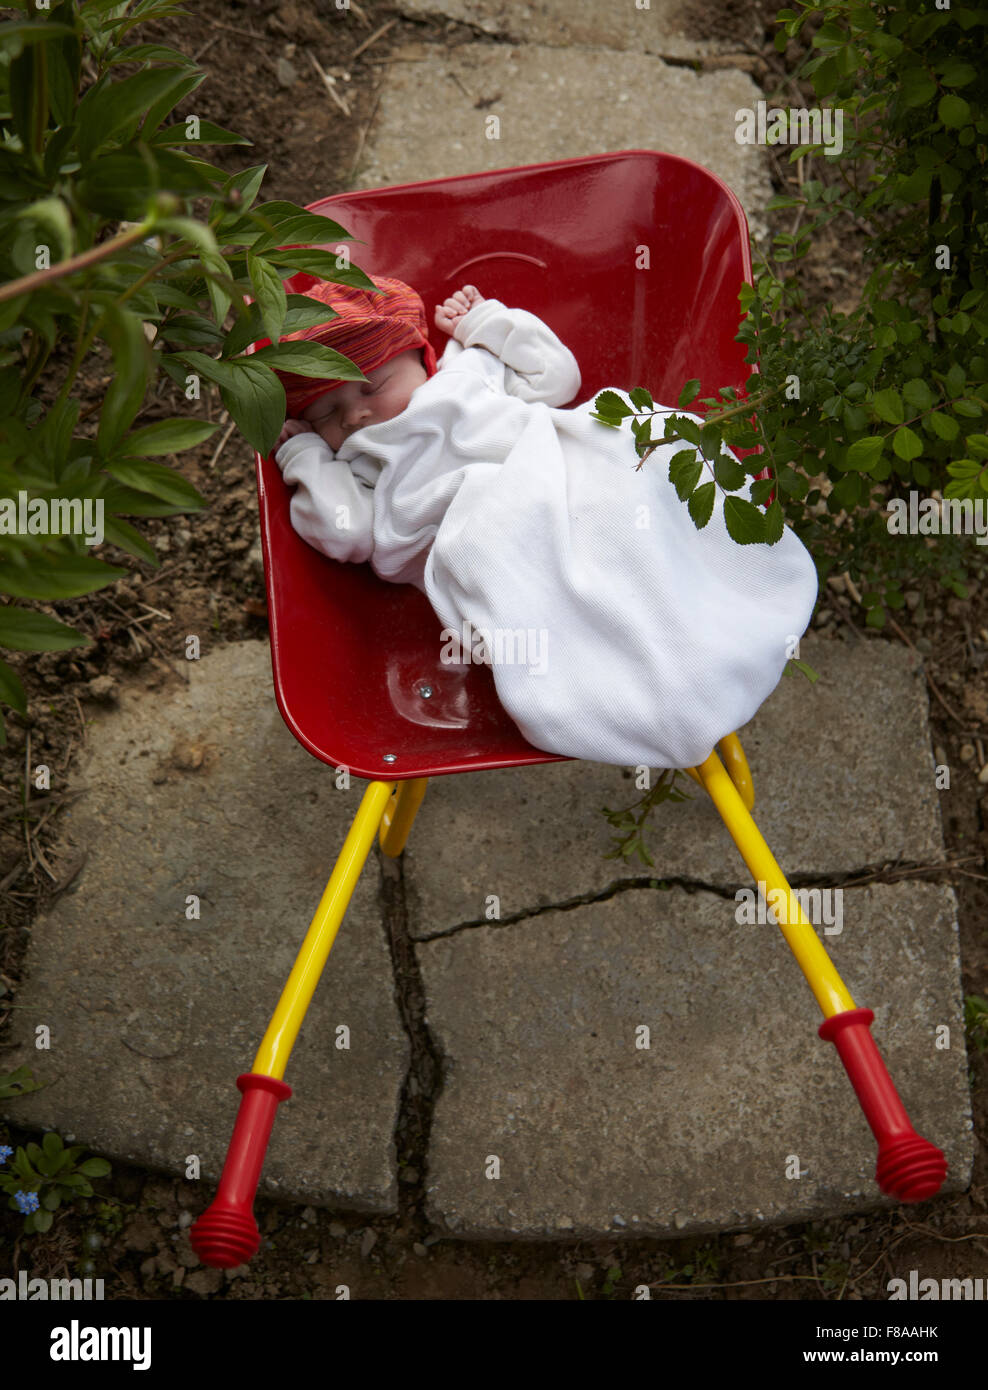 baby girl (1 month) wearing a white sleepingbag lying in a toy wheelbarrow in the garden. - Stock Image